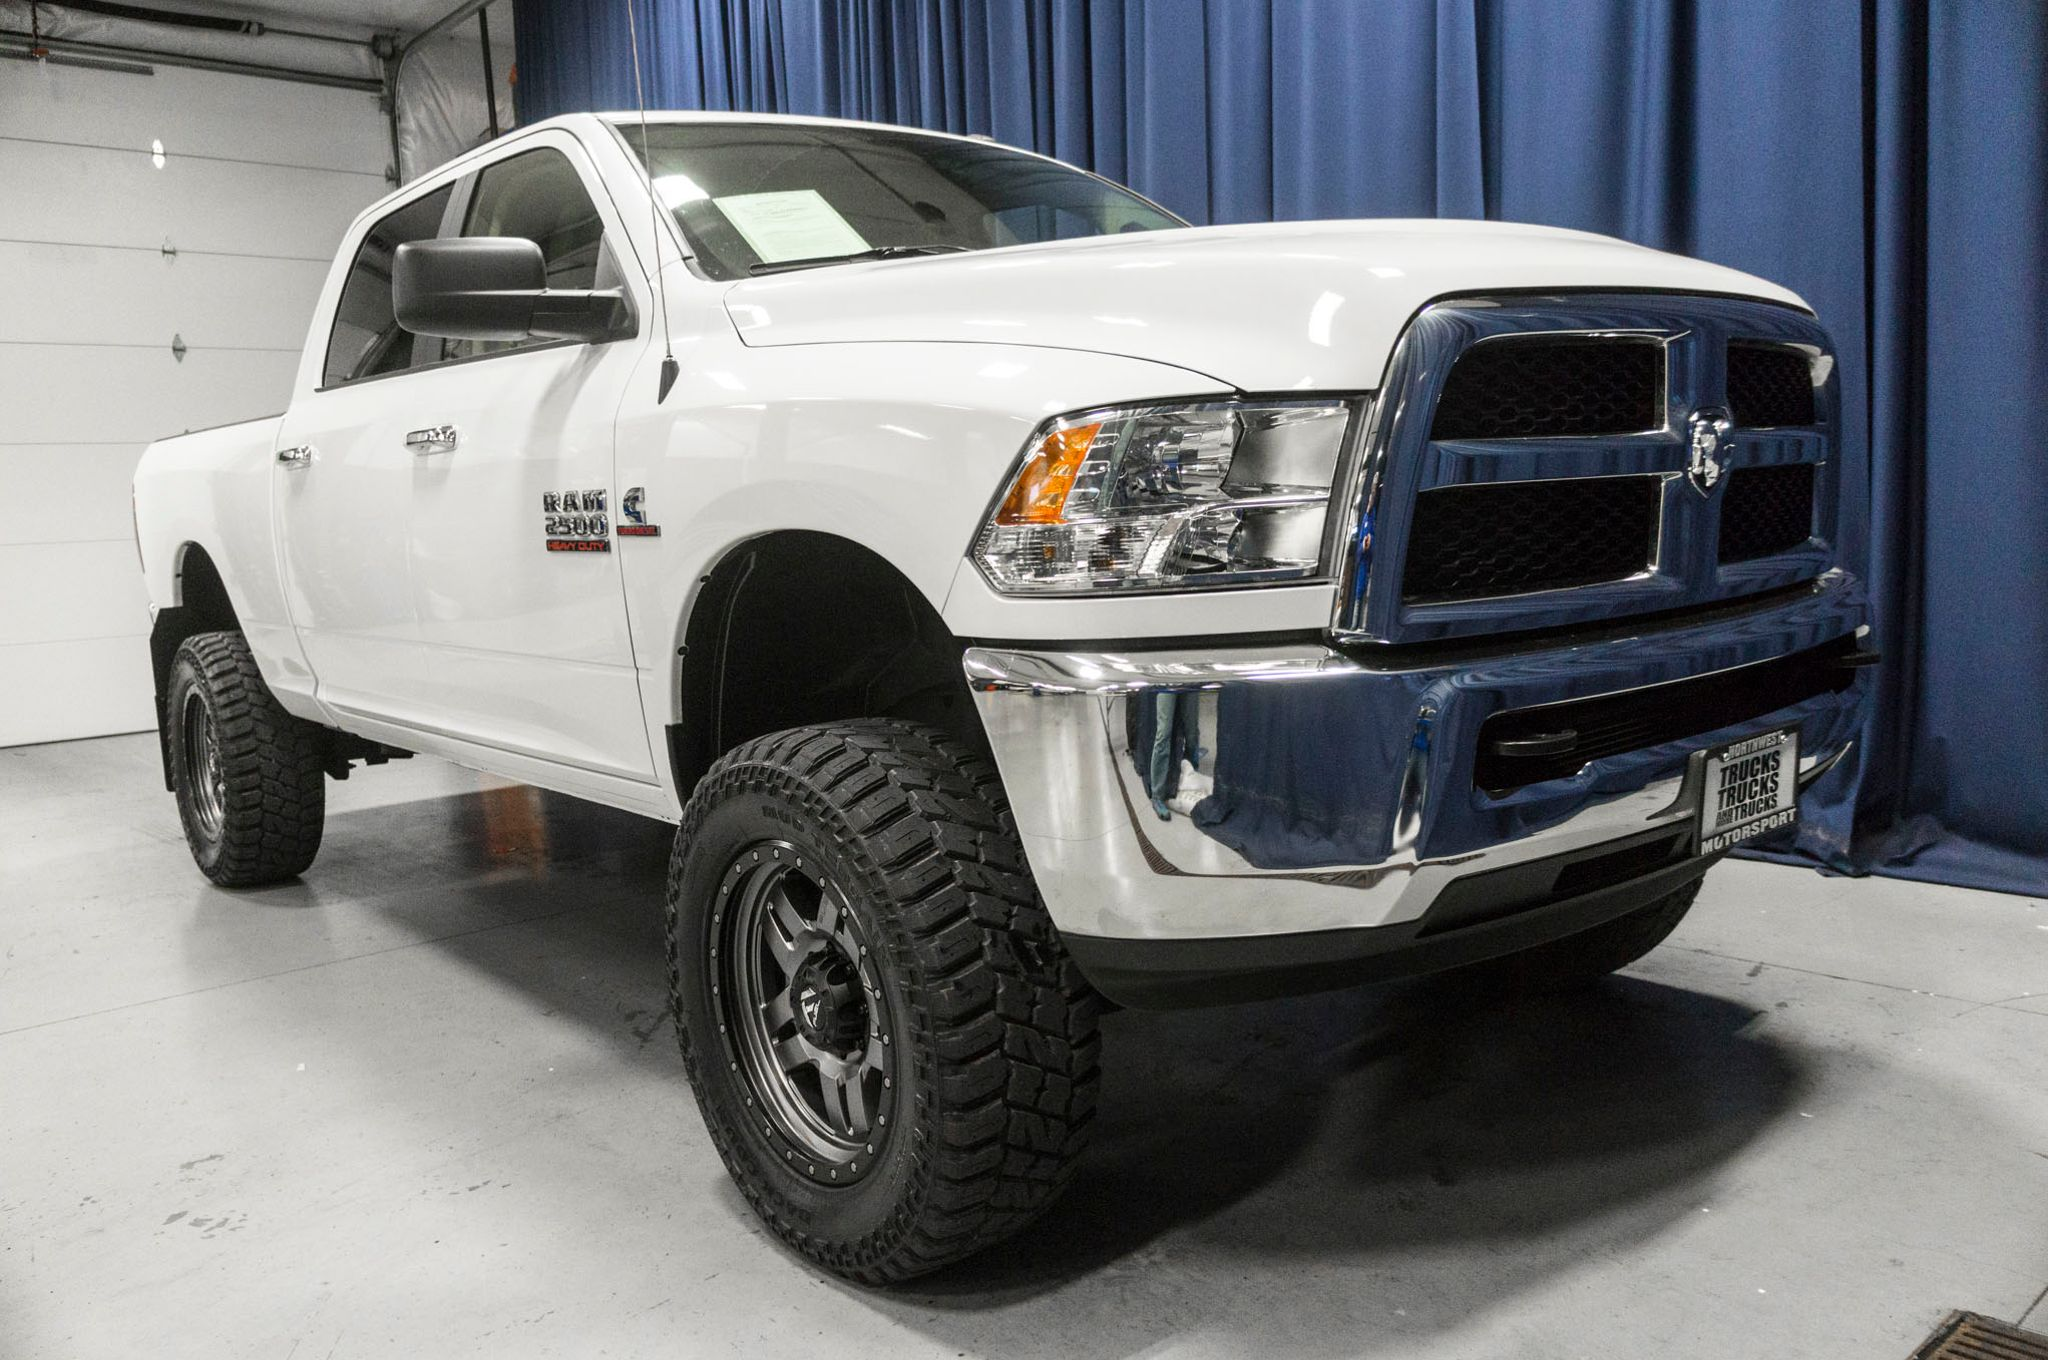 Used Lifted 2017 Dodge Ram 2500 SLT 4x4 Diesel Truck For Sale